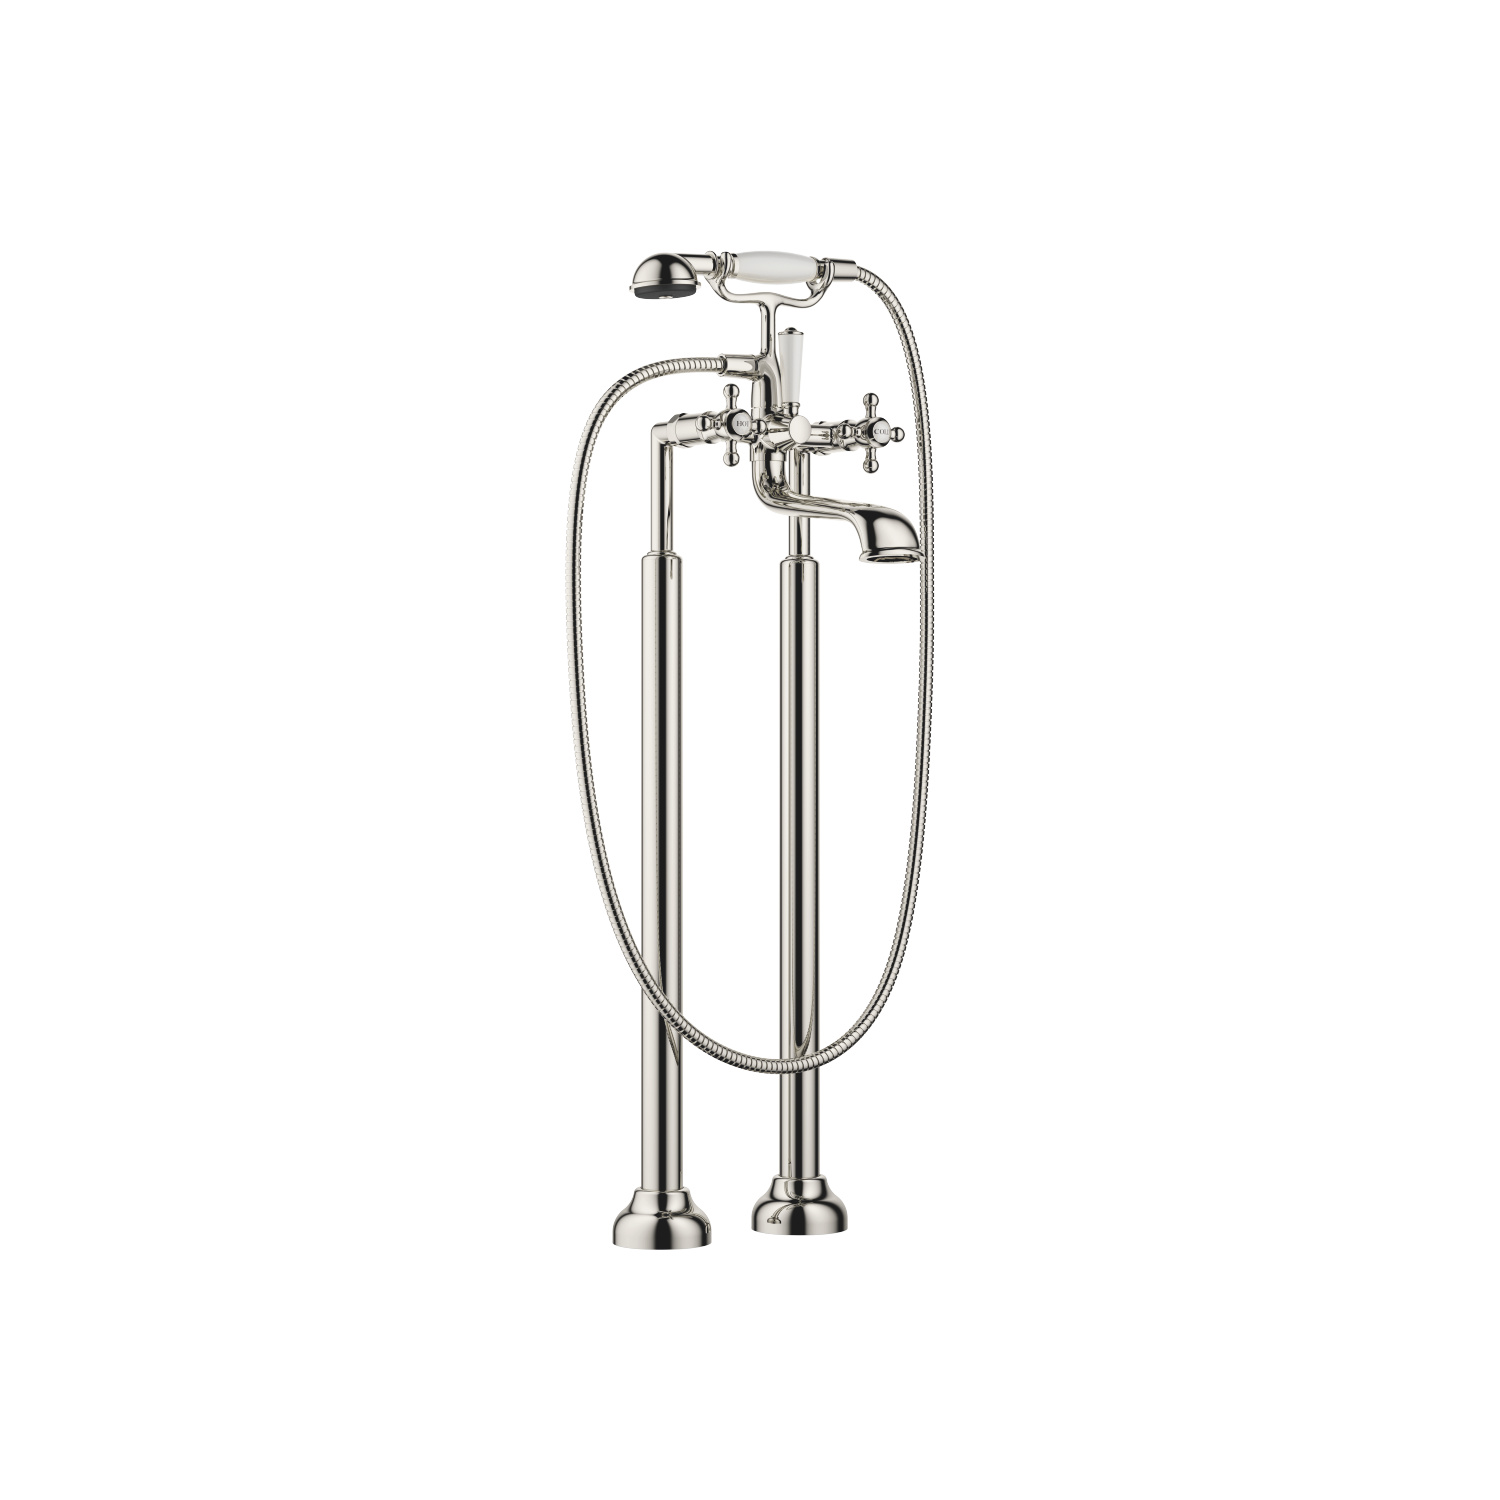 Two-hole bath mixer for free-standing assembly with hand shower set - platinum